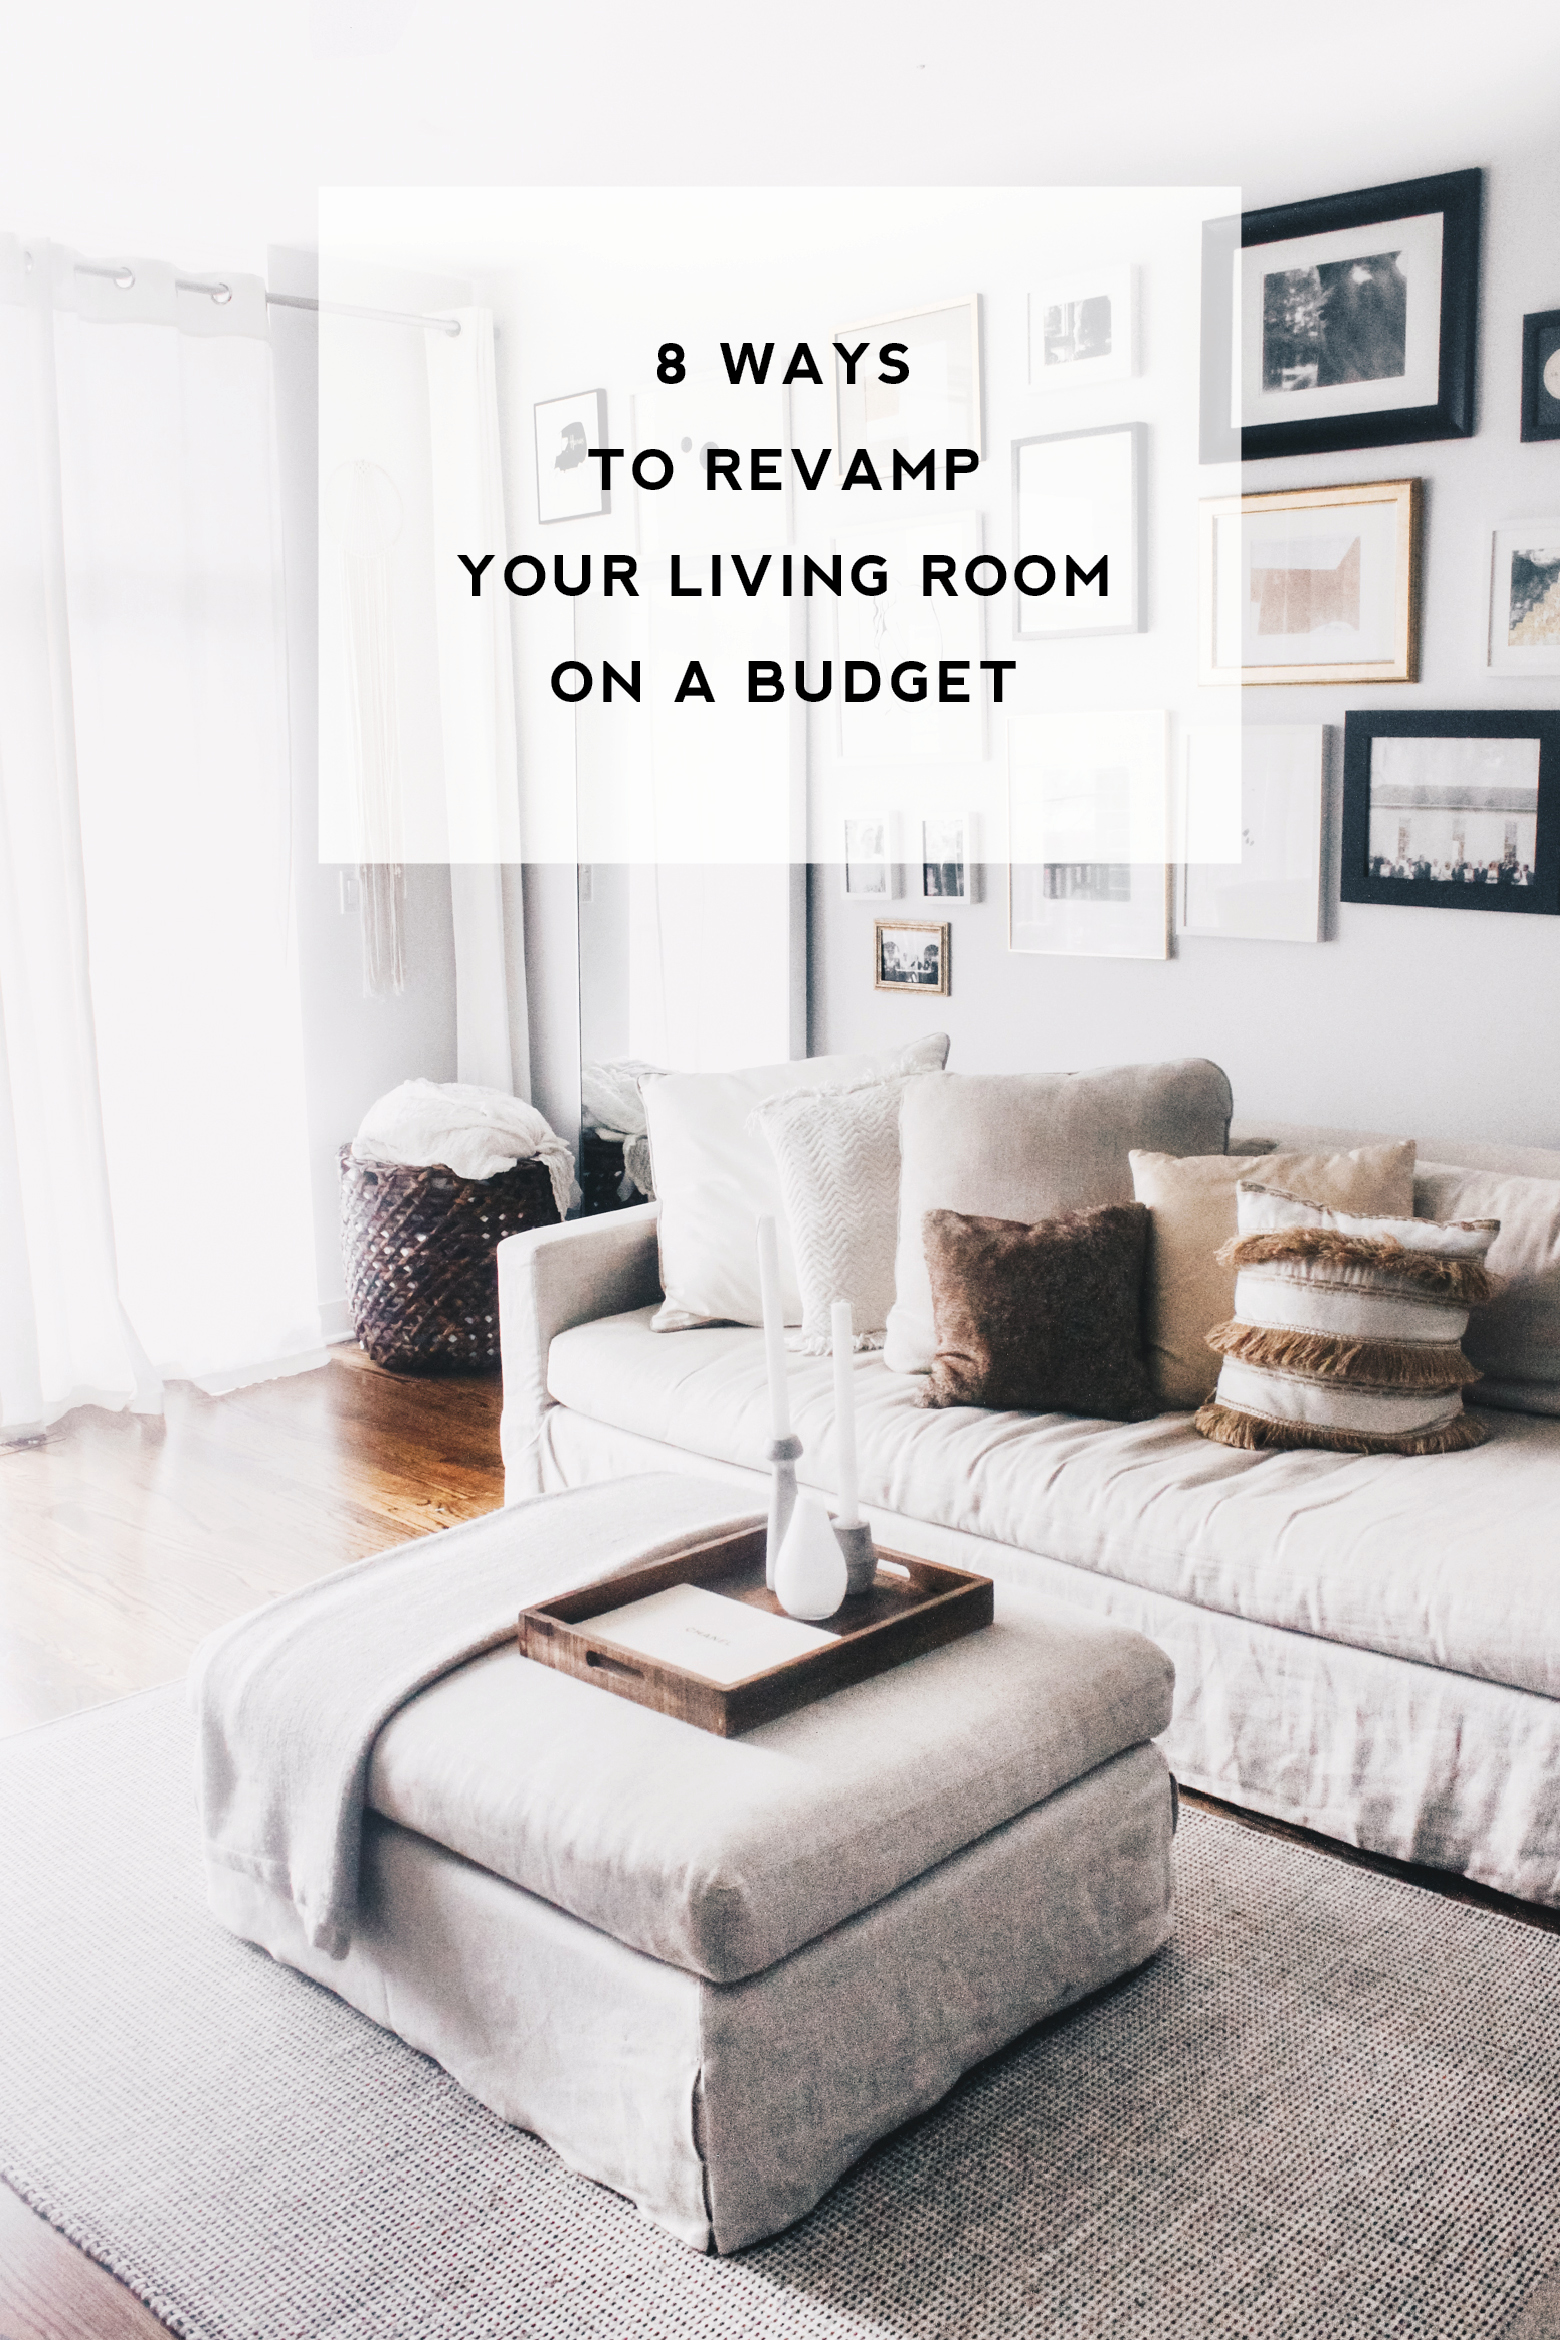 8 easy ways to revamp your living room on a budget – Meg McMillin